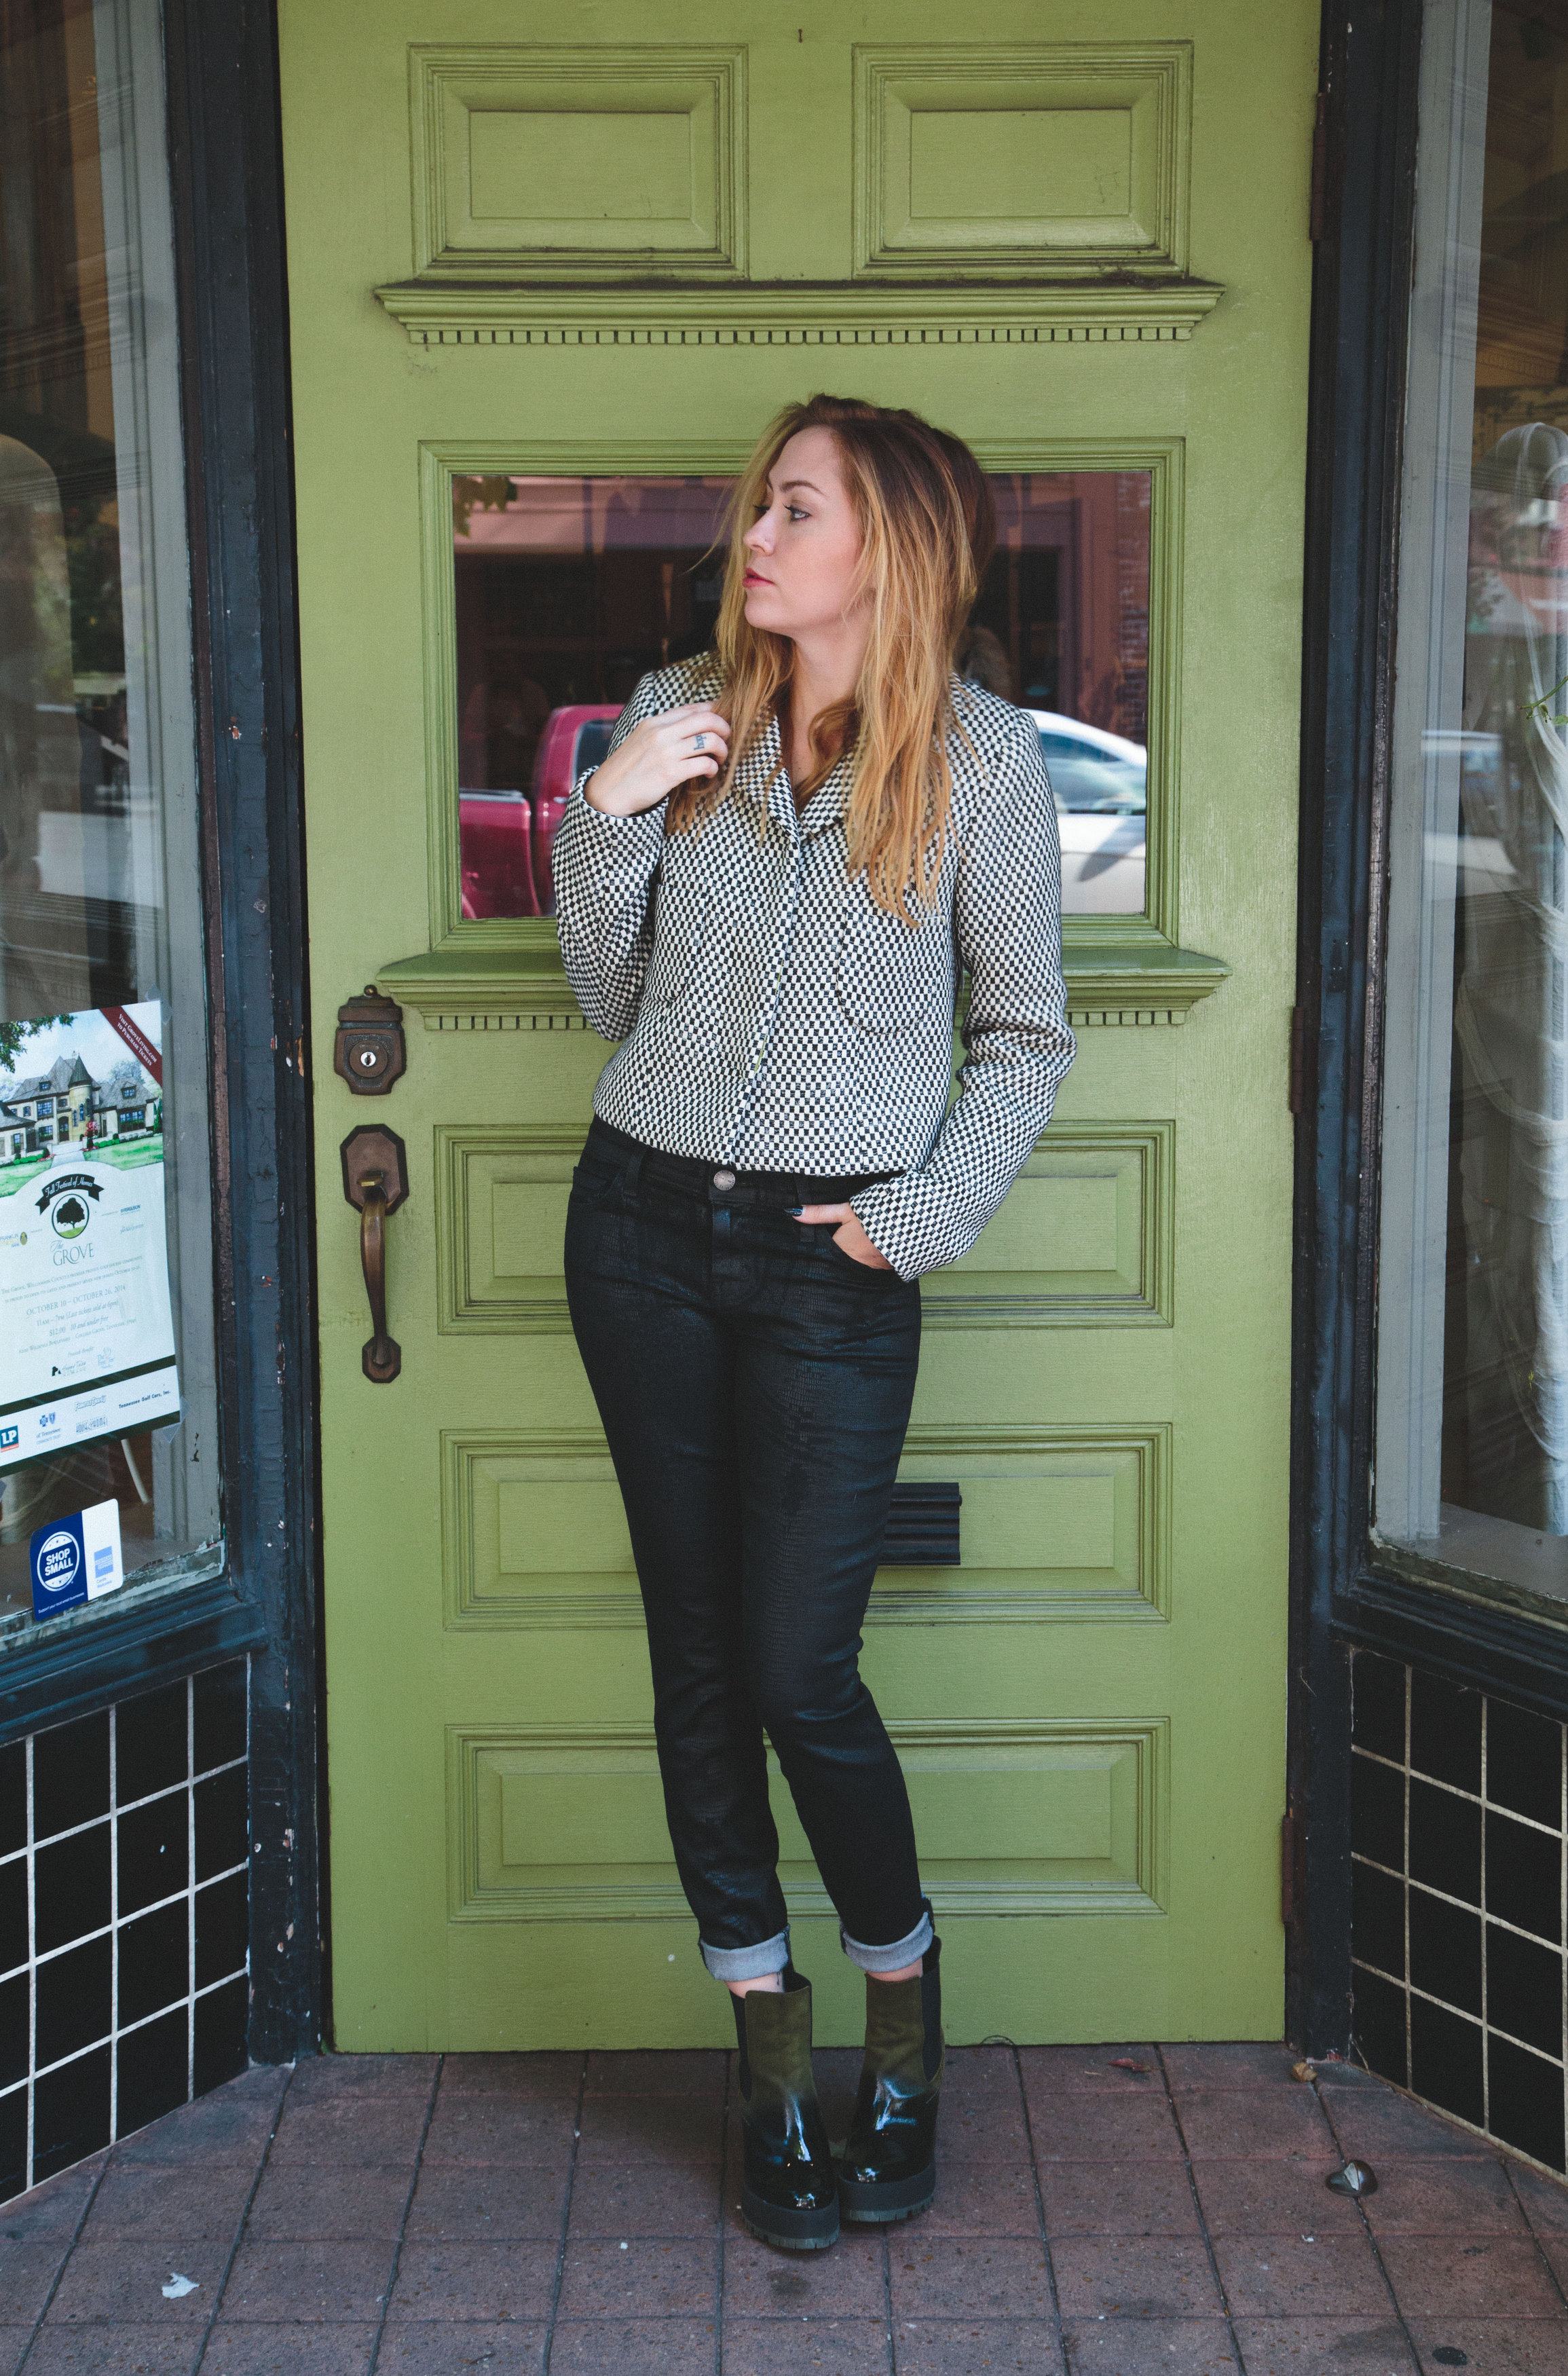 Jacket - Smythe |  Jeans - Current Elliott  |  Shoes - Miista  ||  photos by Susannah Brittany